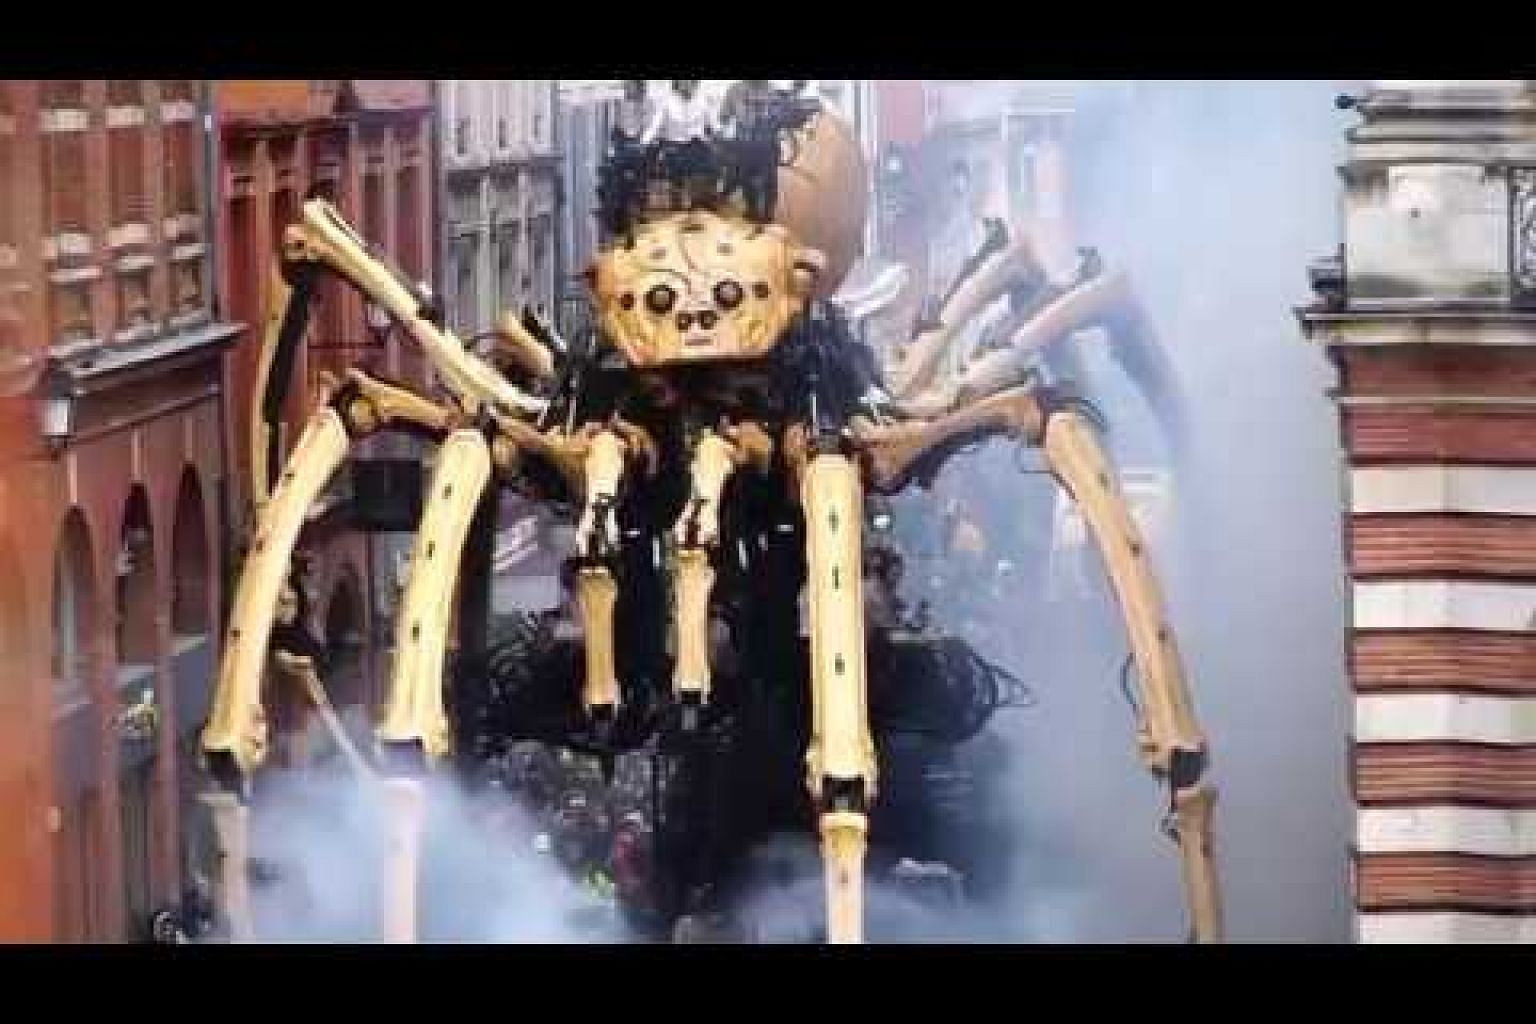 Giant mechanical creatures delight spectators as they roam central Toulouse